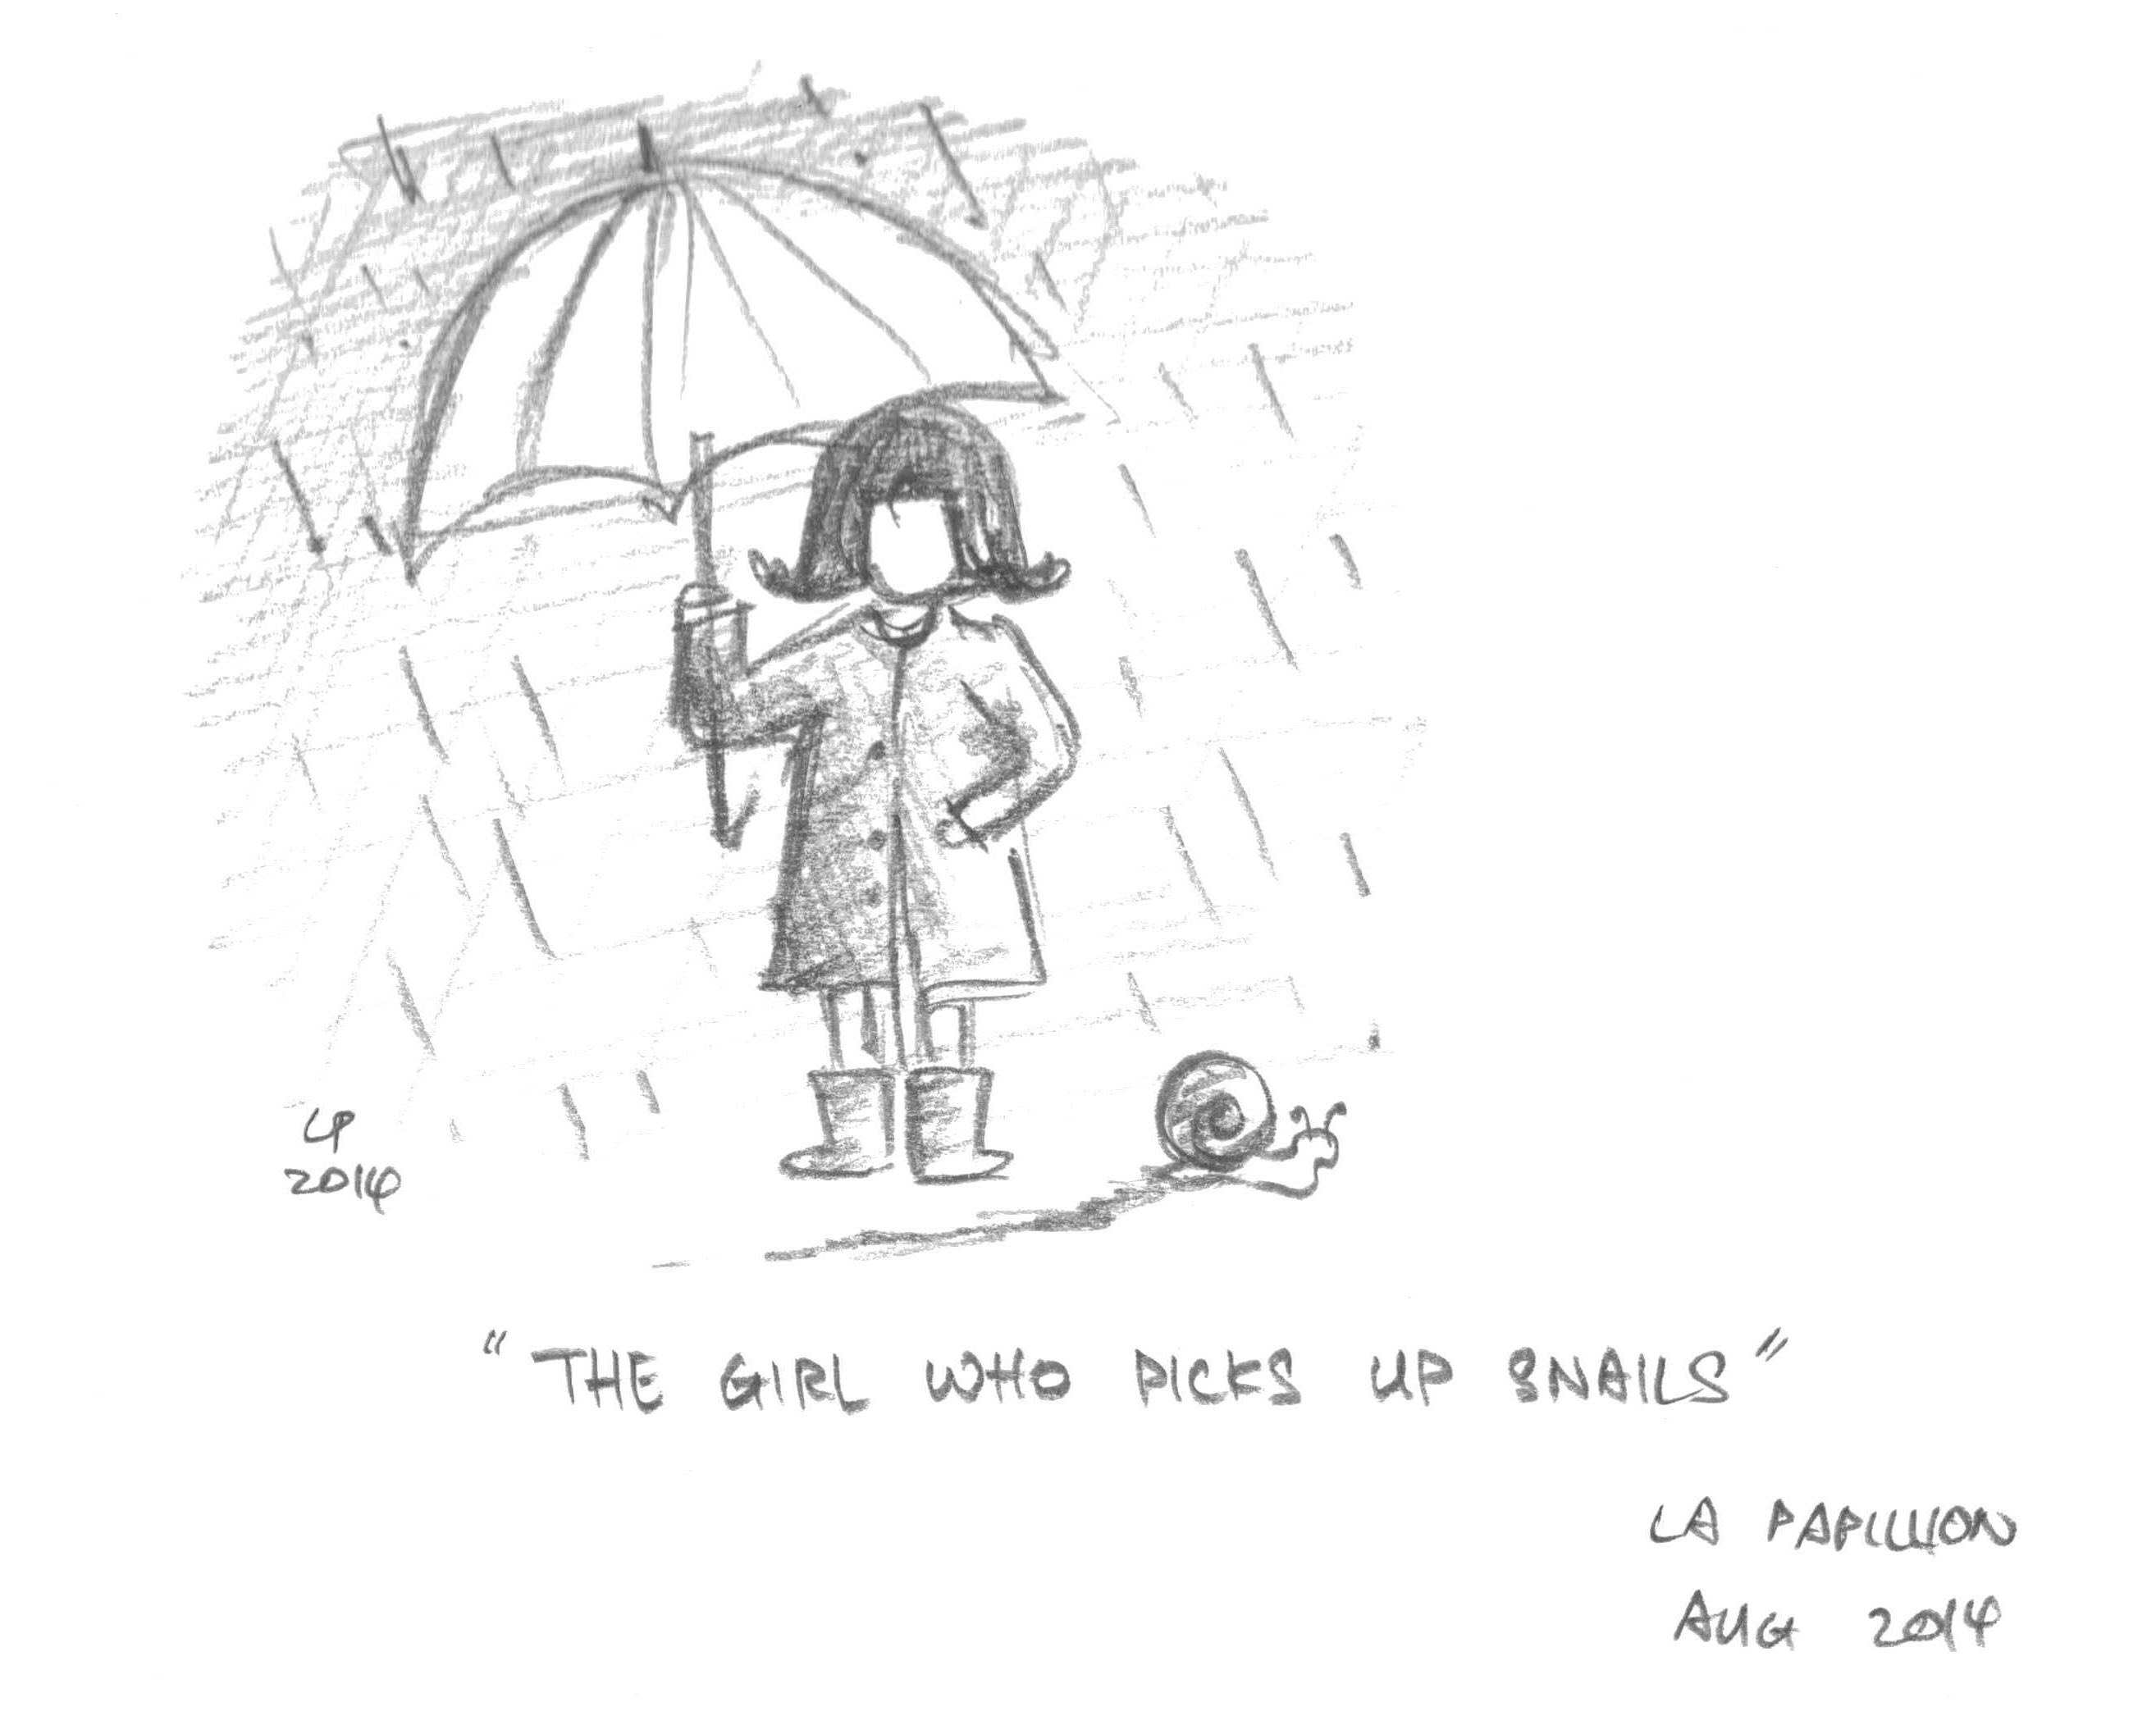 The Girl Who Picks Up Snail